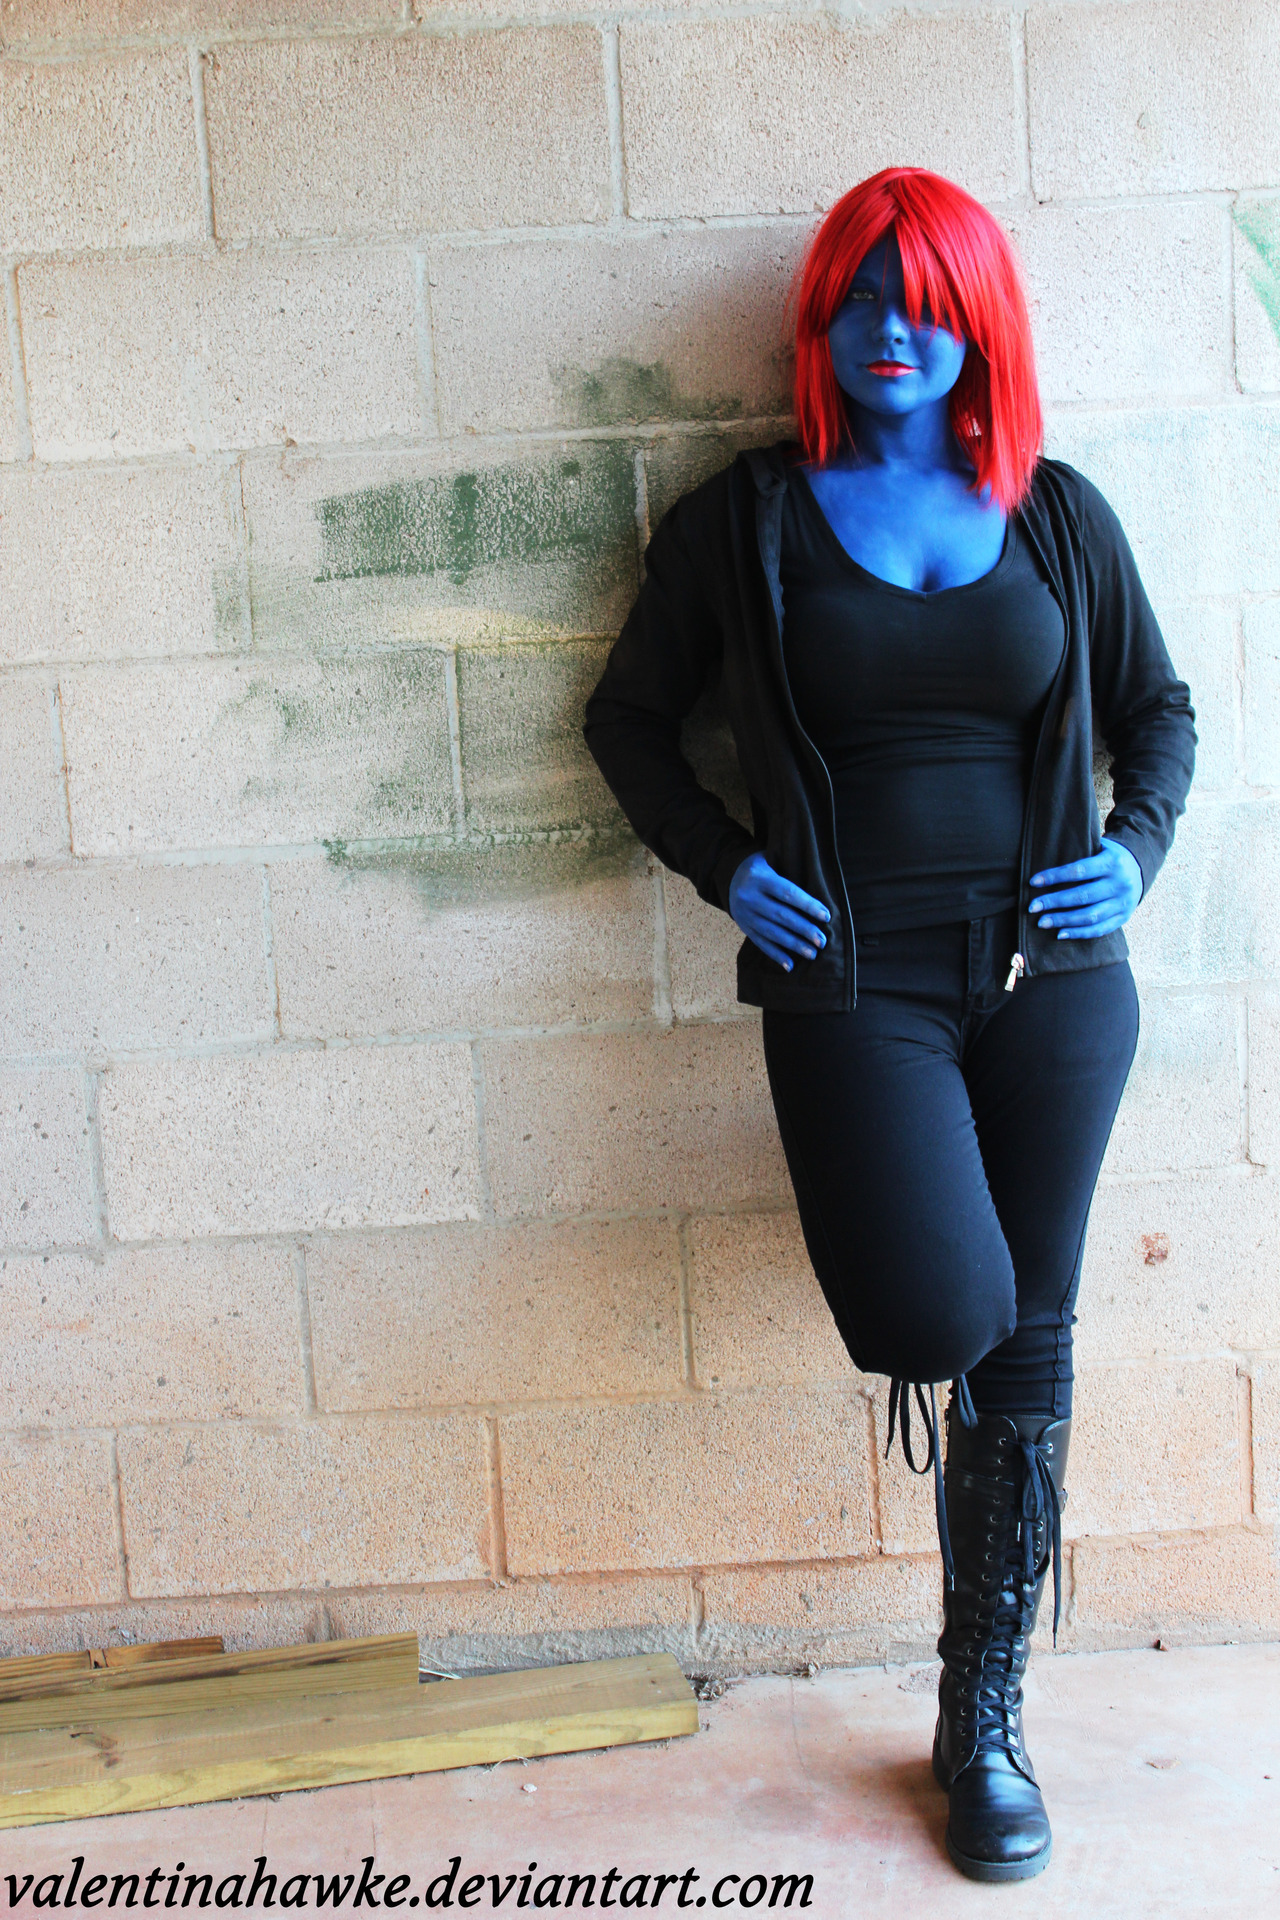 Me just being Casual Mystique.